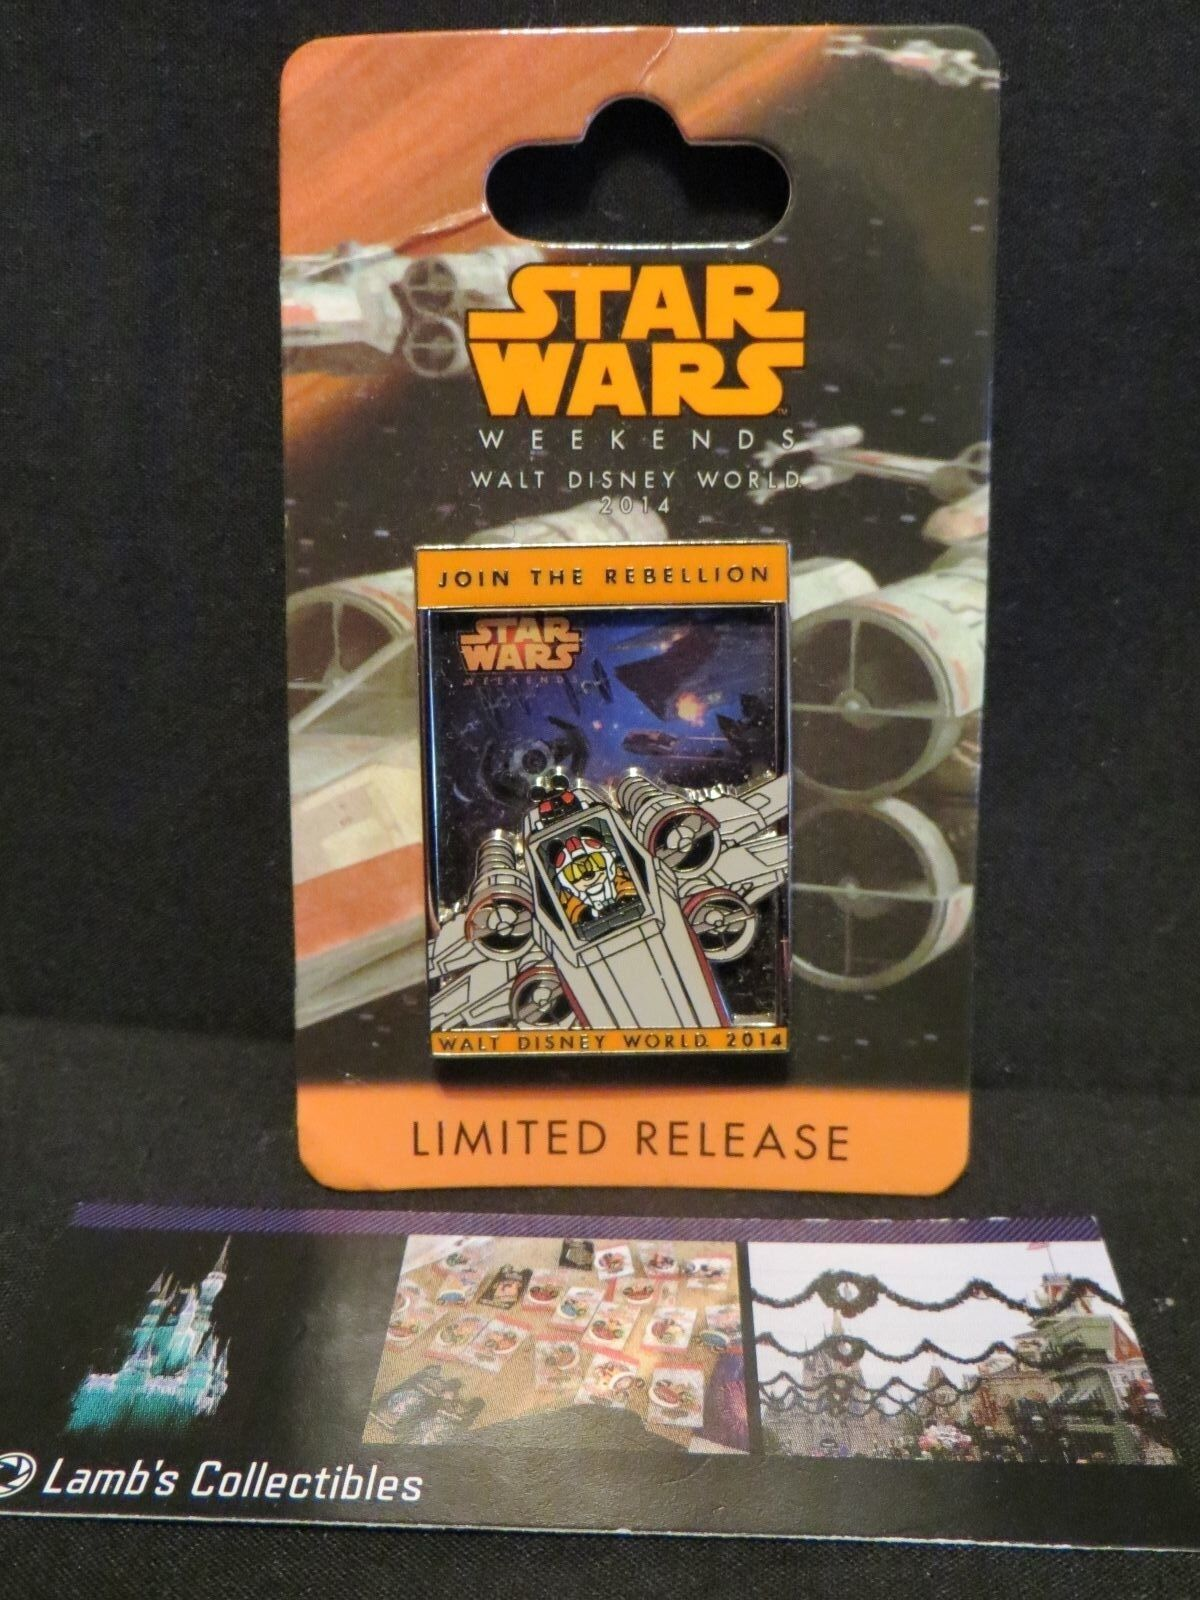 Primary image for Mikey X wing Logo Pin 2014 Star Wars Weekend Disney Parks pin